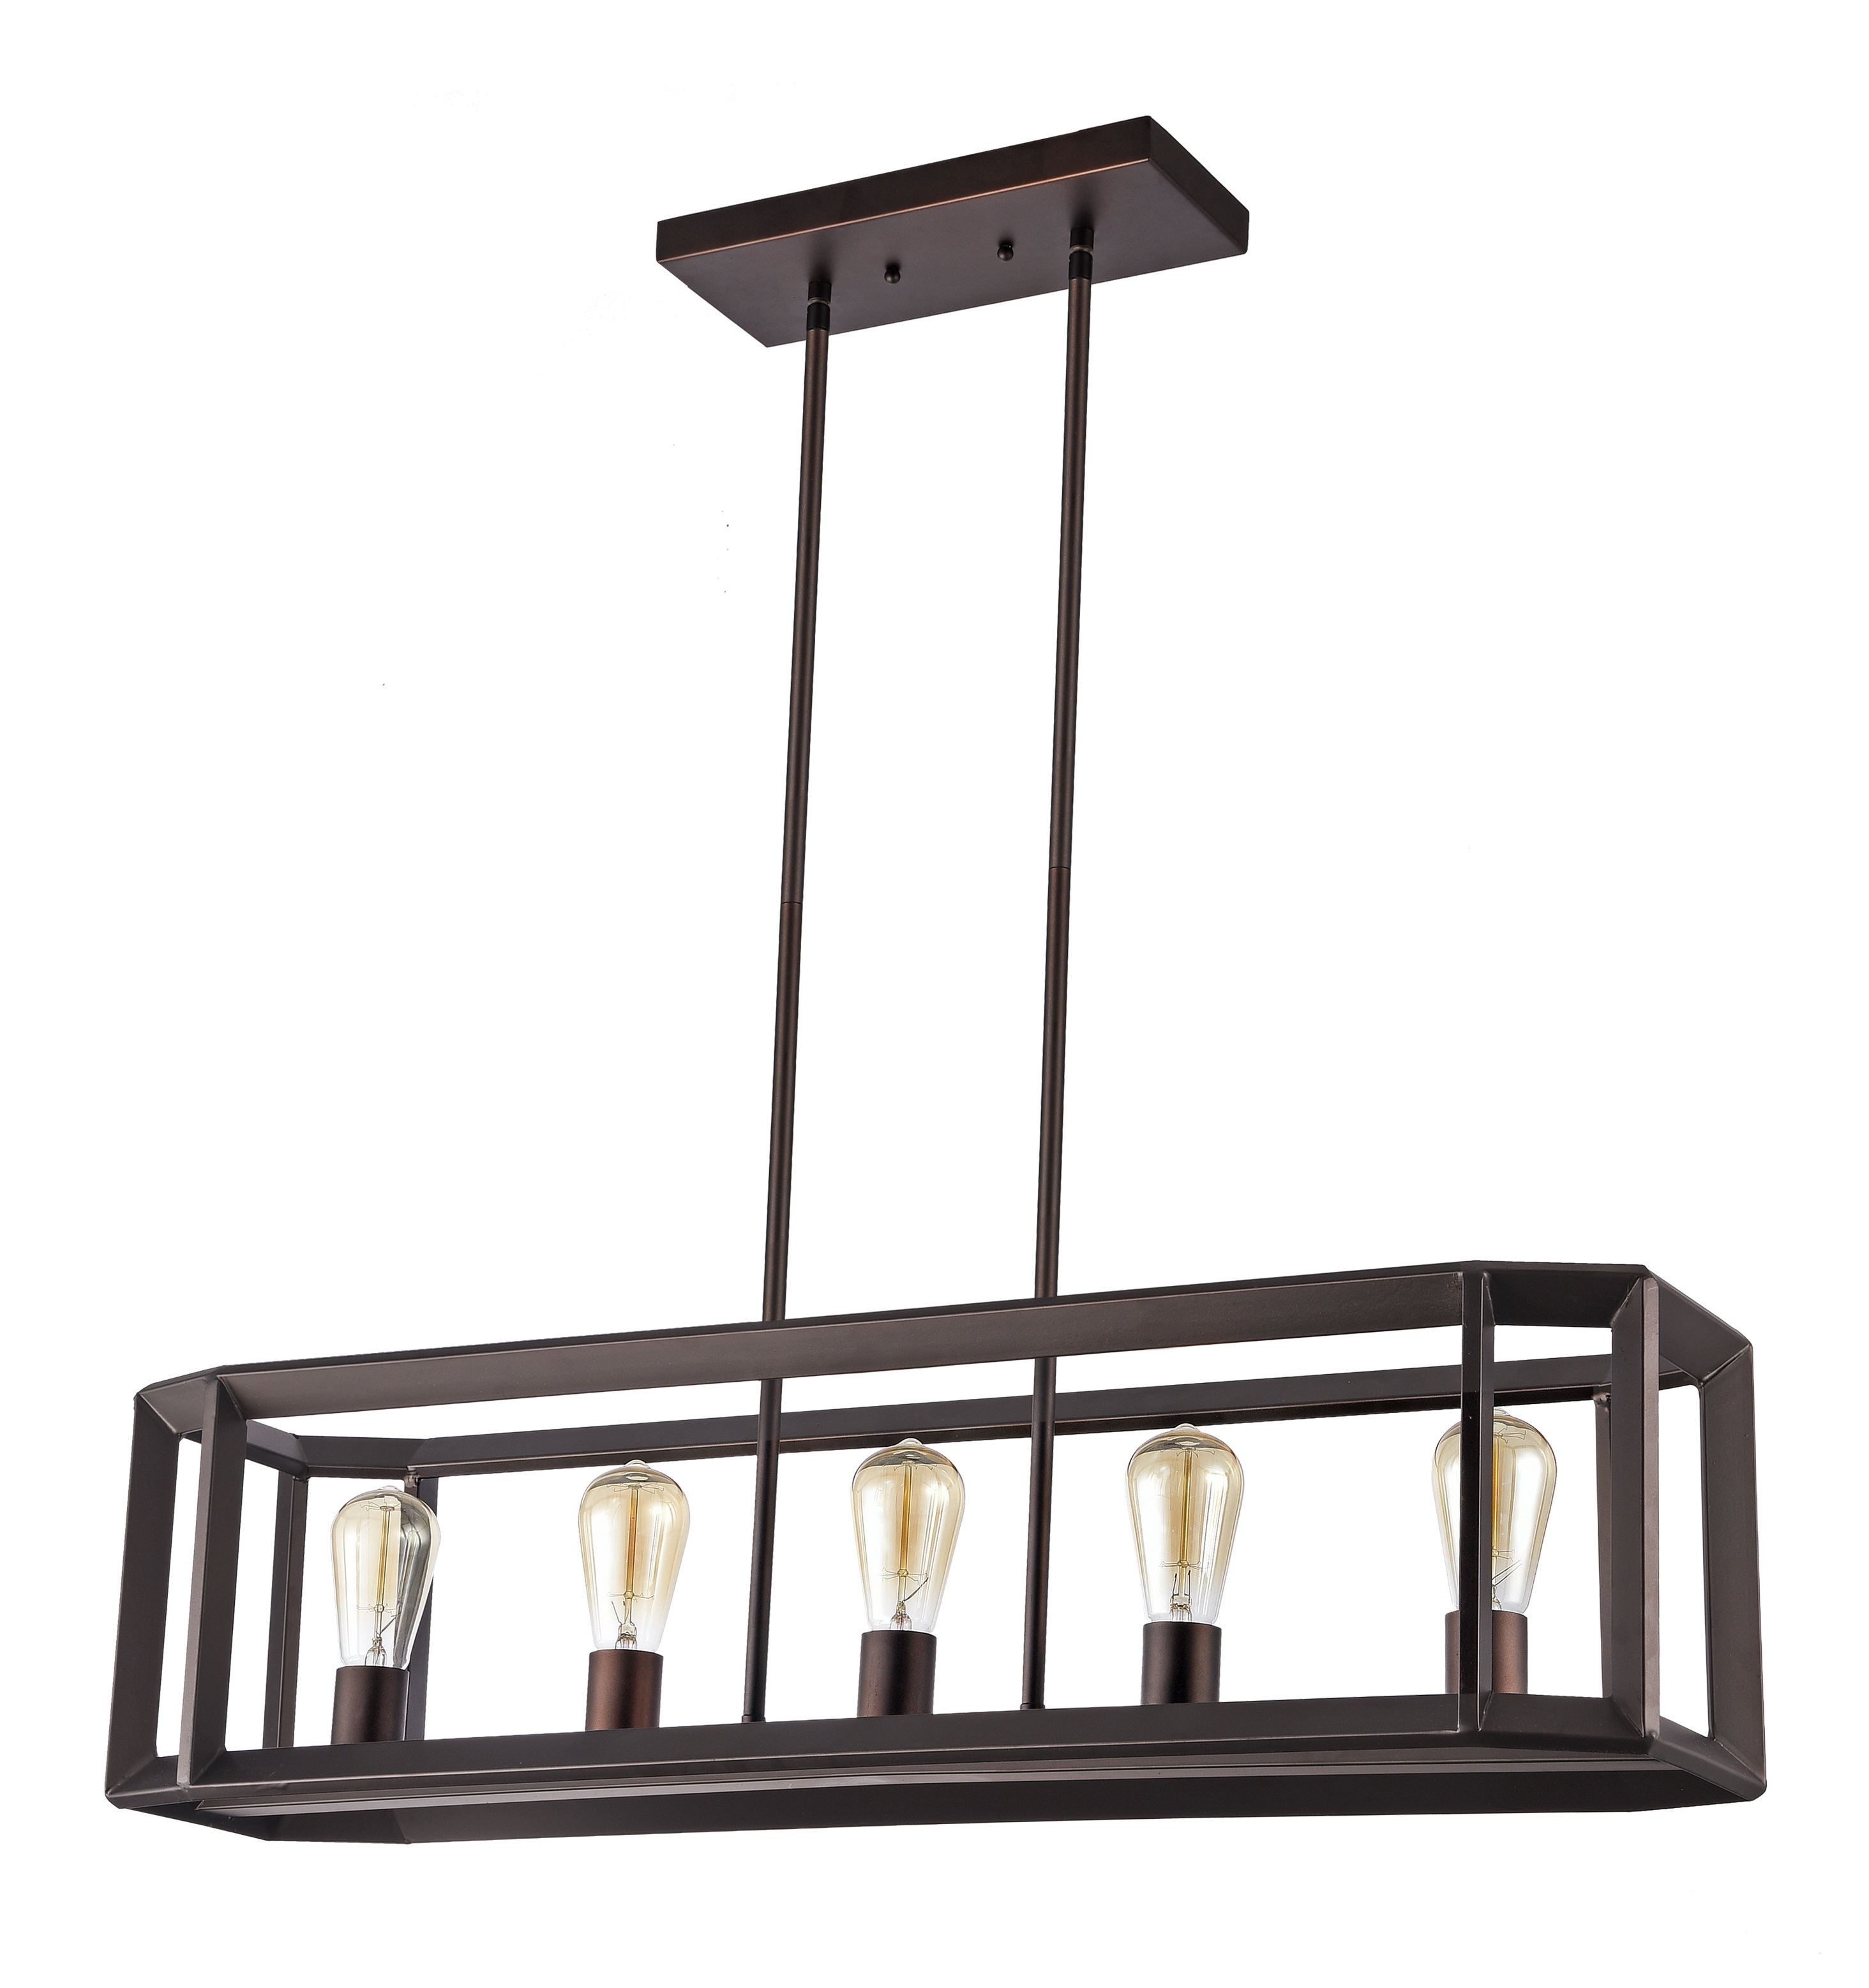 Latest Bouvet 5 Light Kitchen Island Linear Pendant For Euclid 2 Light Kitchen Island Linear Pendants (View 18 of 25)